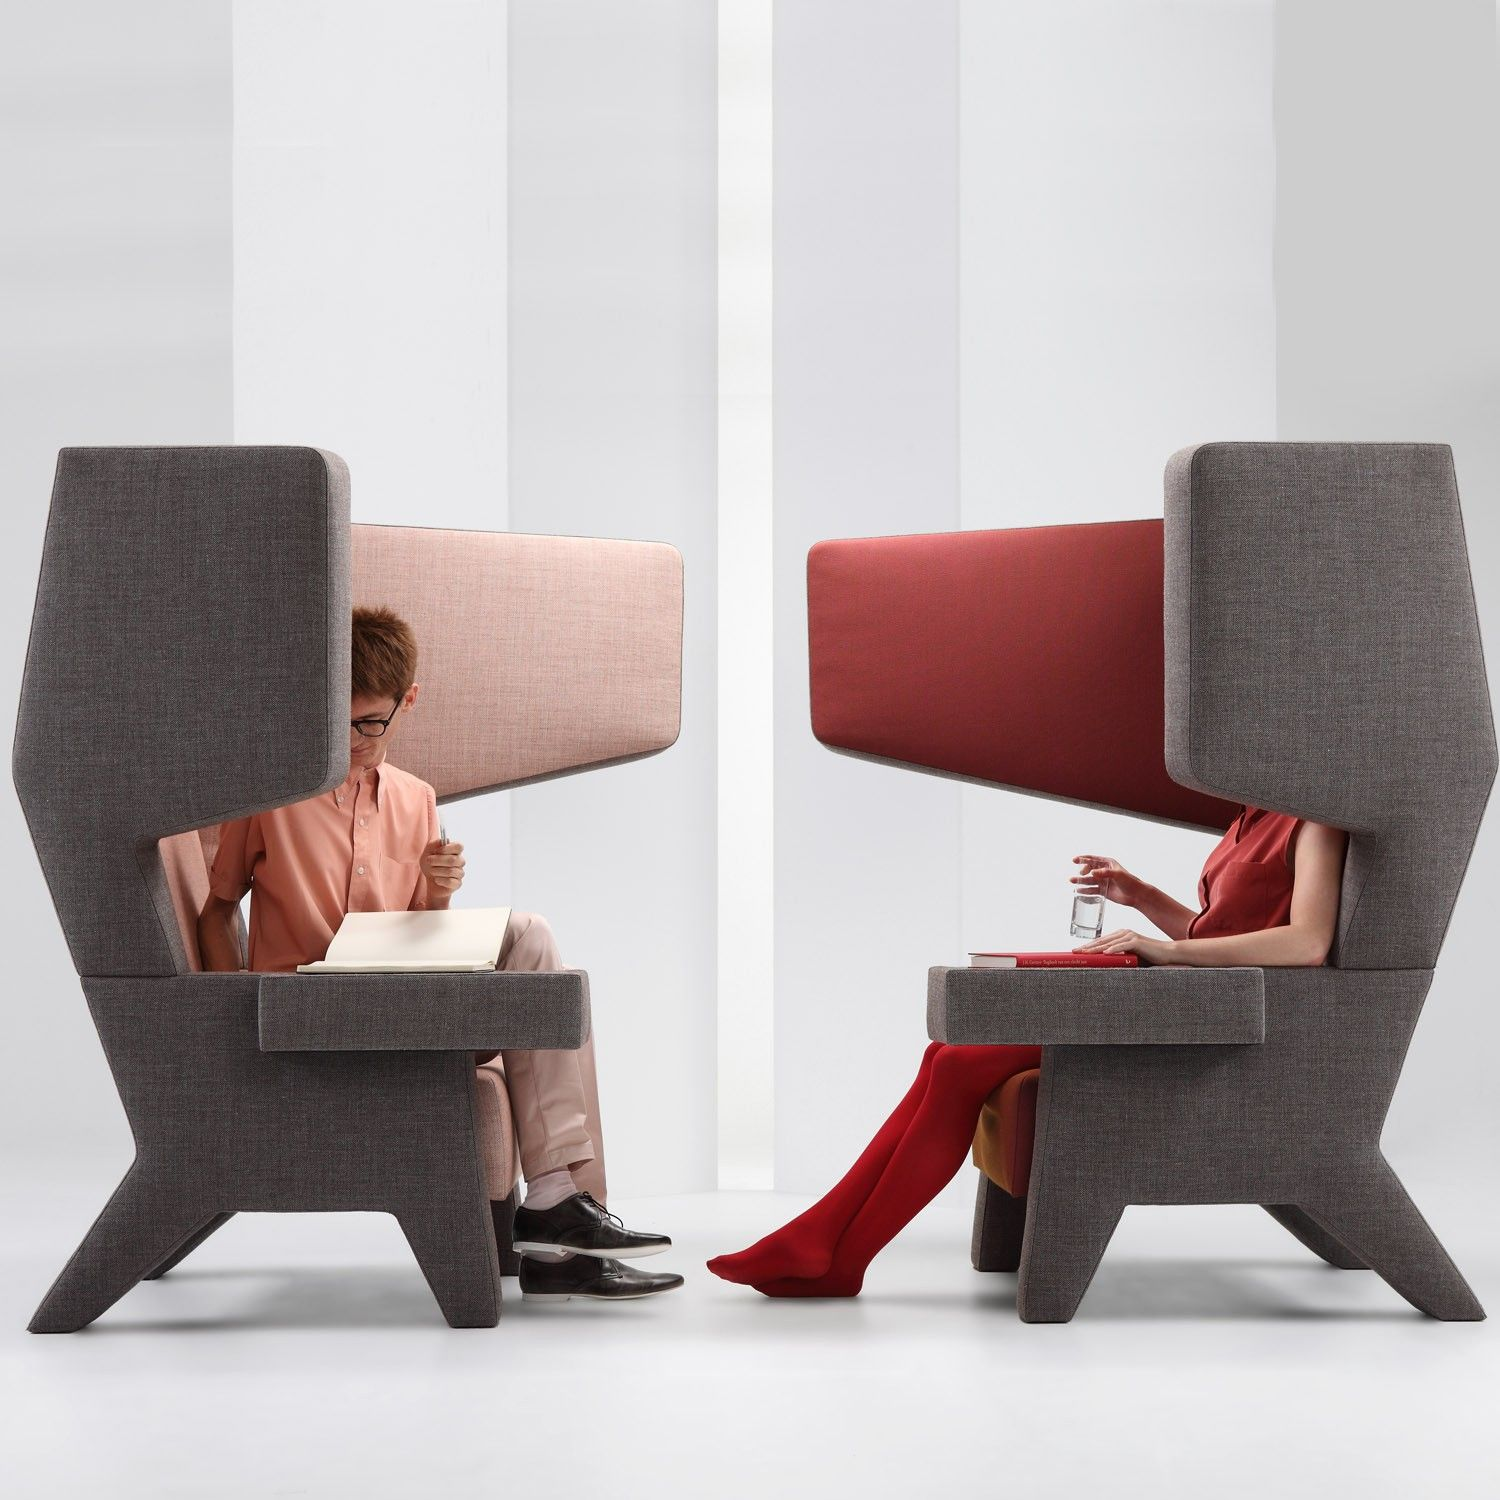 PROOFF EarChair Wing Back Chairs (With images) | Office